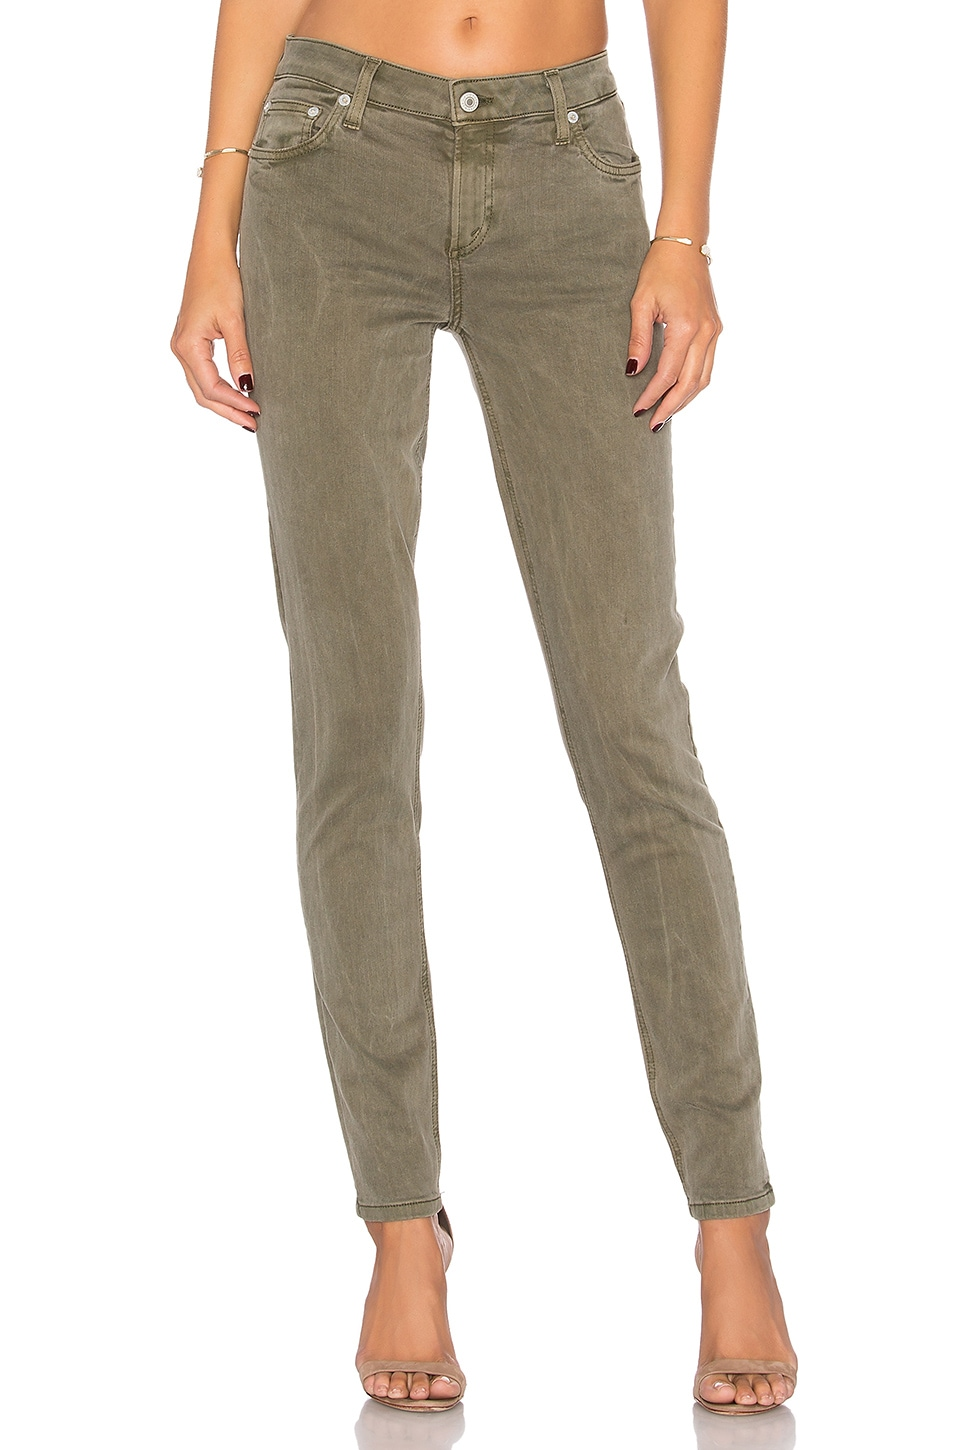 Photo of Crissi Skinny Jean by Tularosa on sale